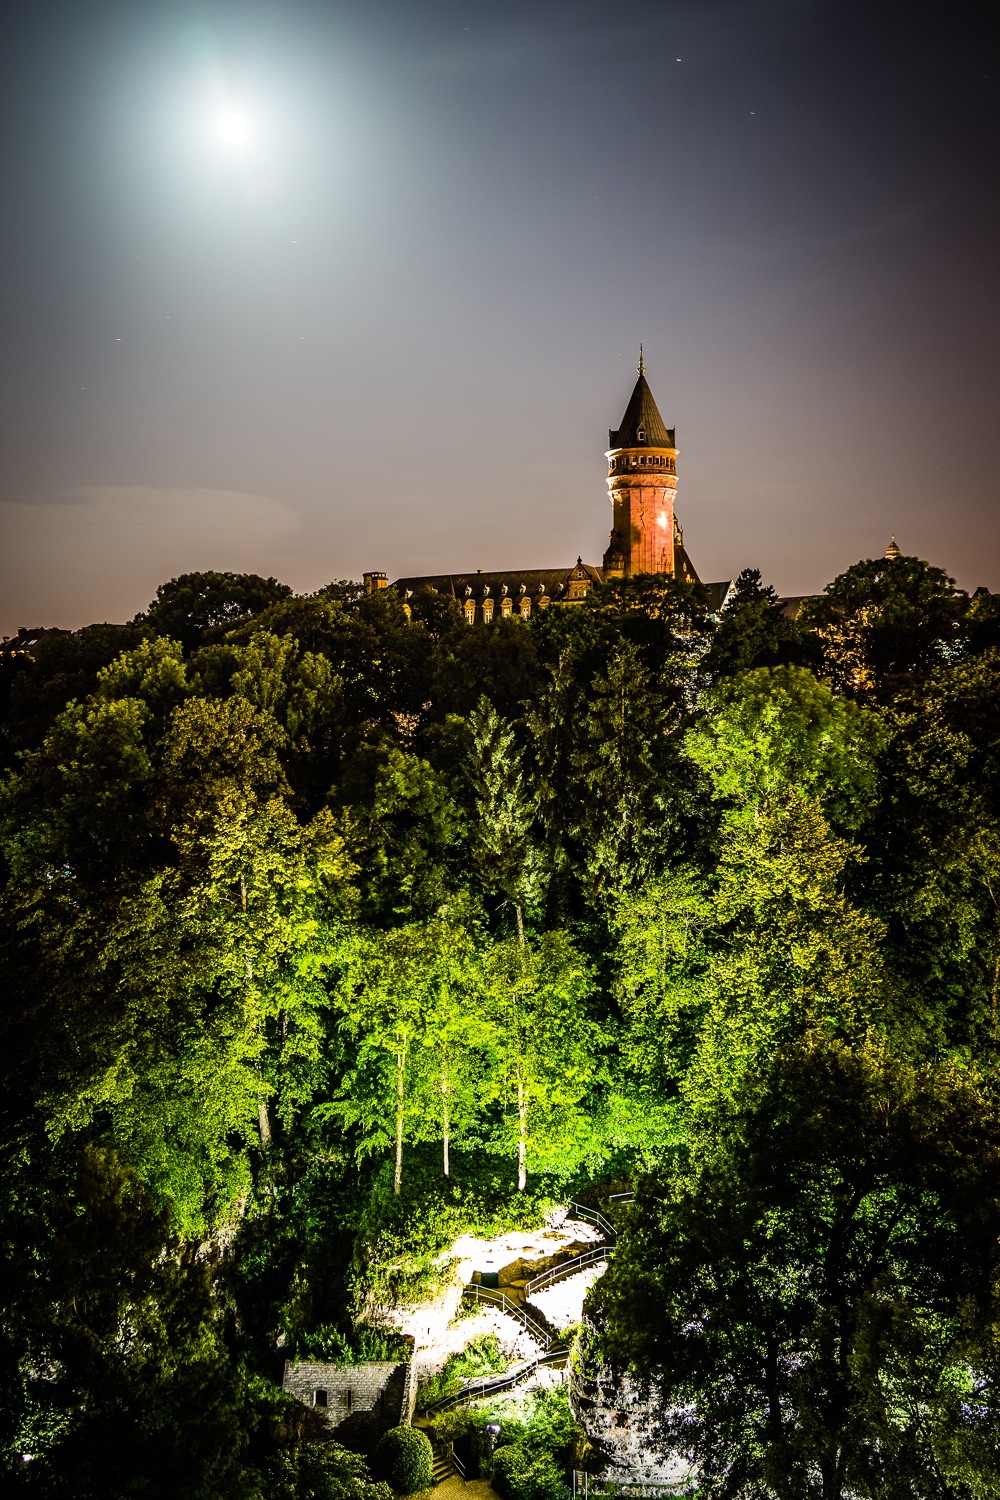 20140612 Luxembourg by night - RX1R - 01618.jpg